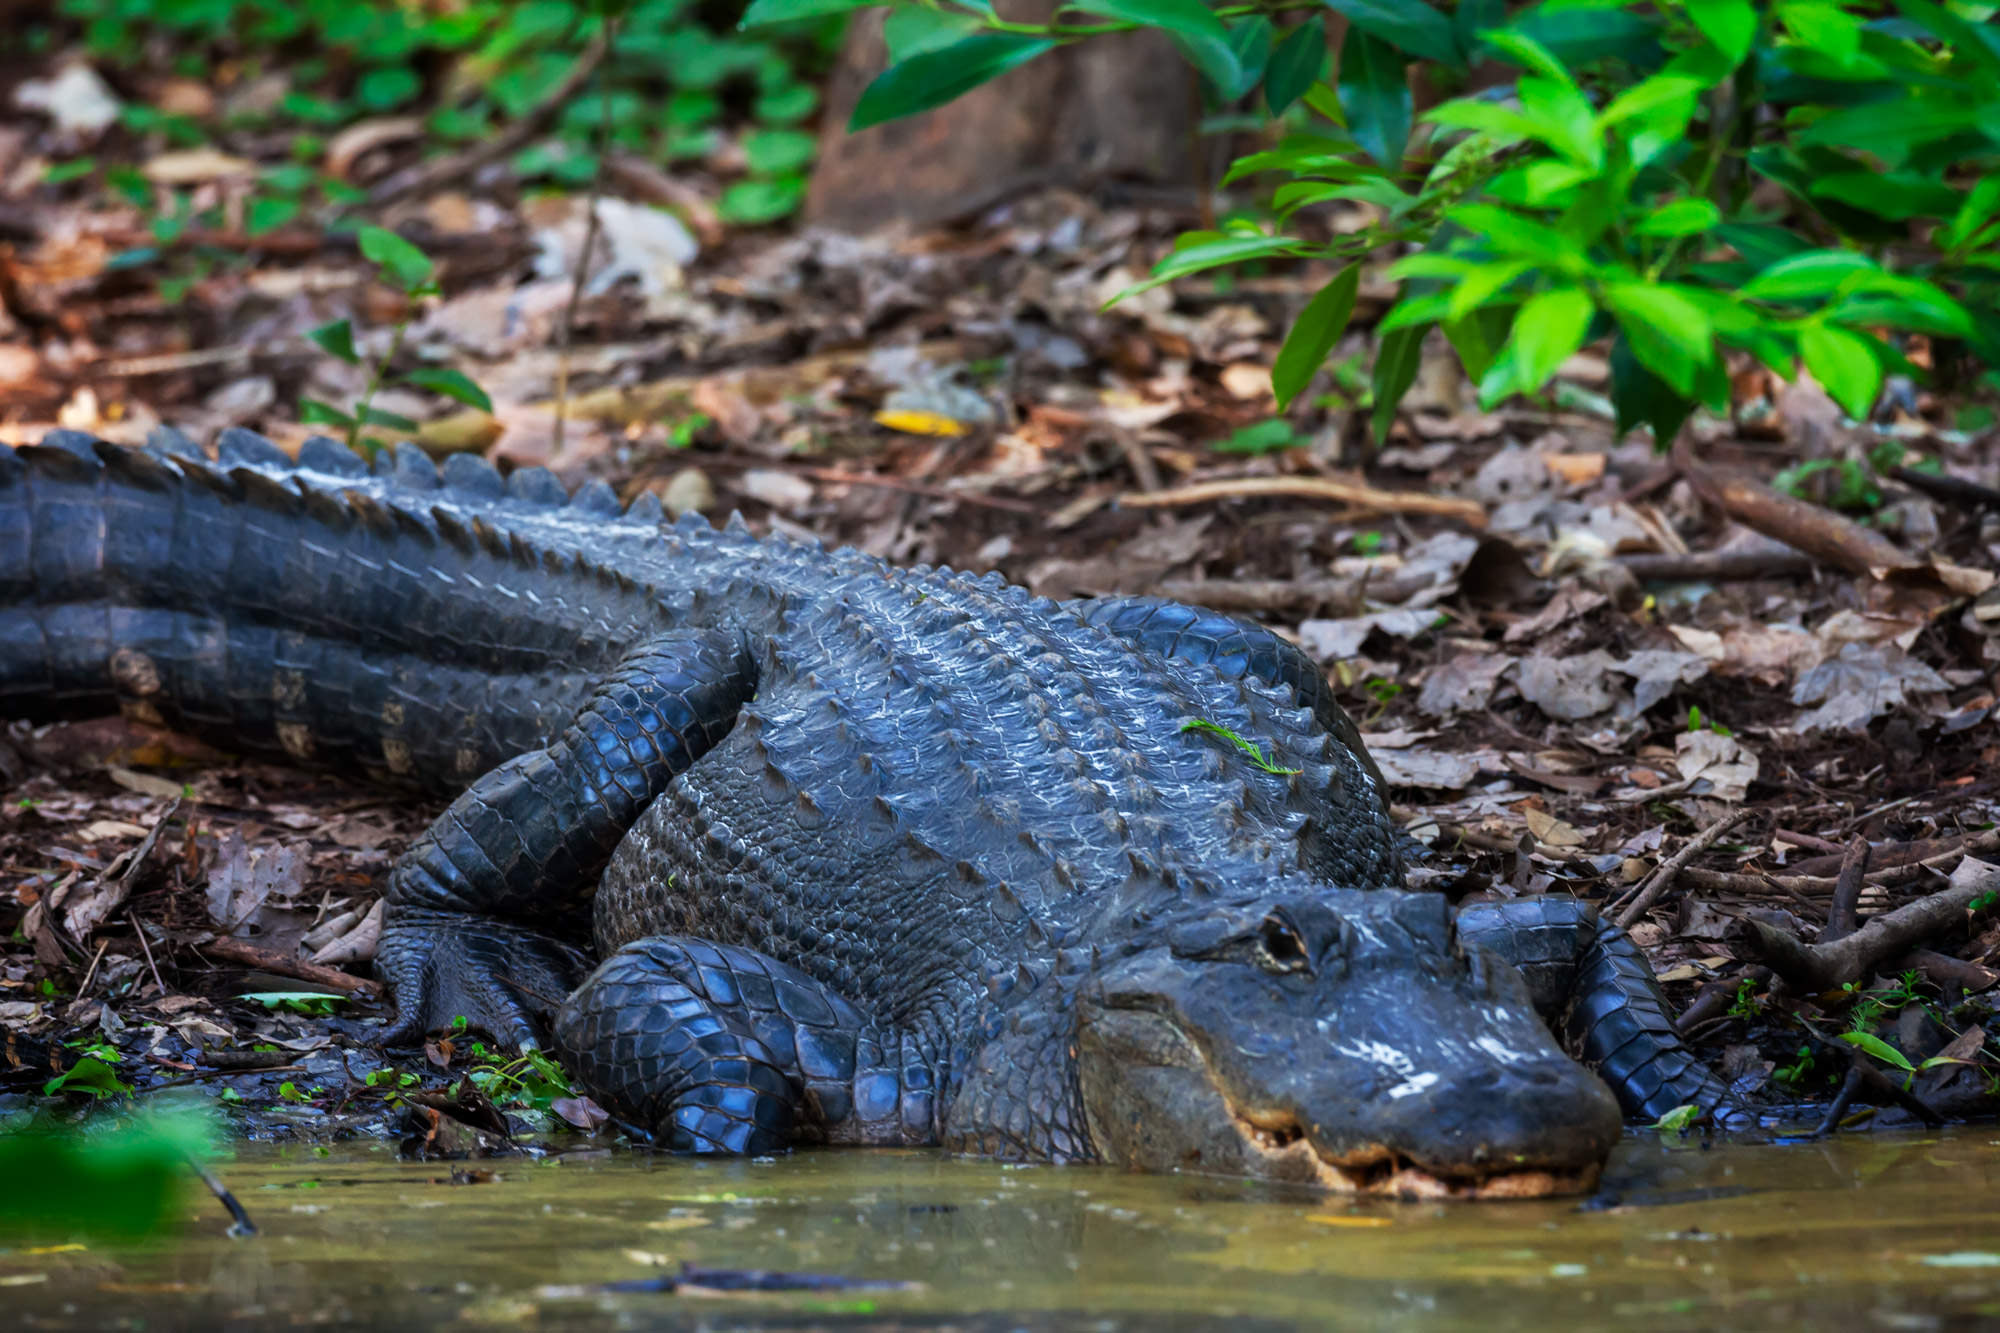 Alligator, Florida, Highlands Hammock, limited edition, photograph, fine art, wildlife, photo